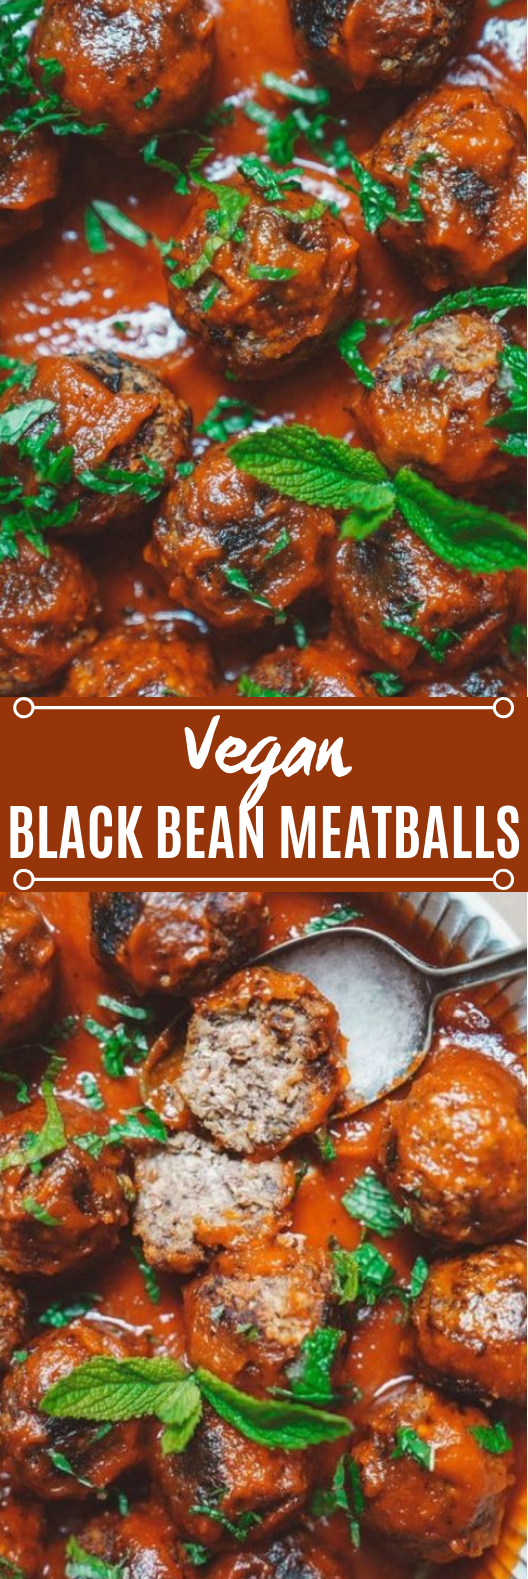 Vegan BBQ Black Bean Meatballs #vegetarian #dinner